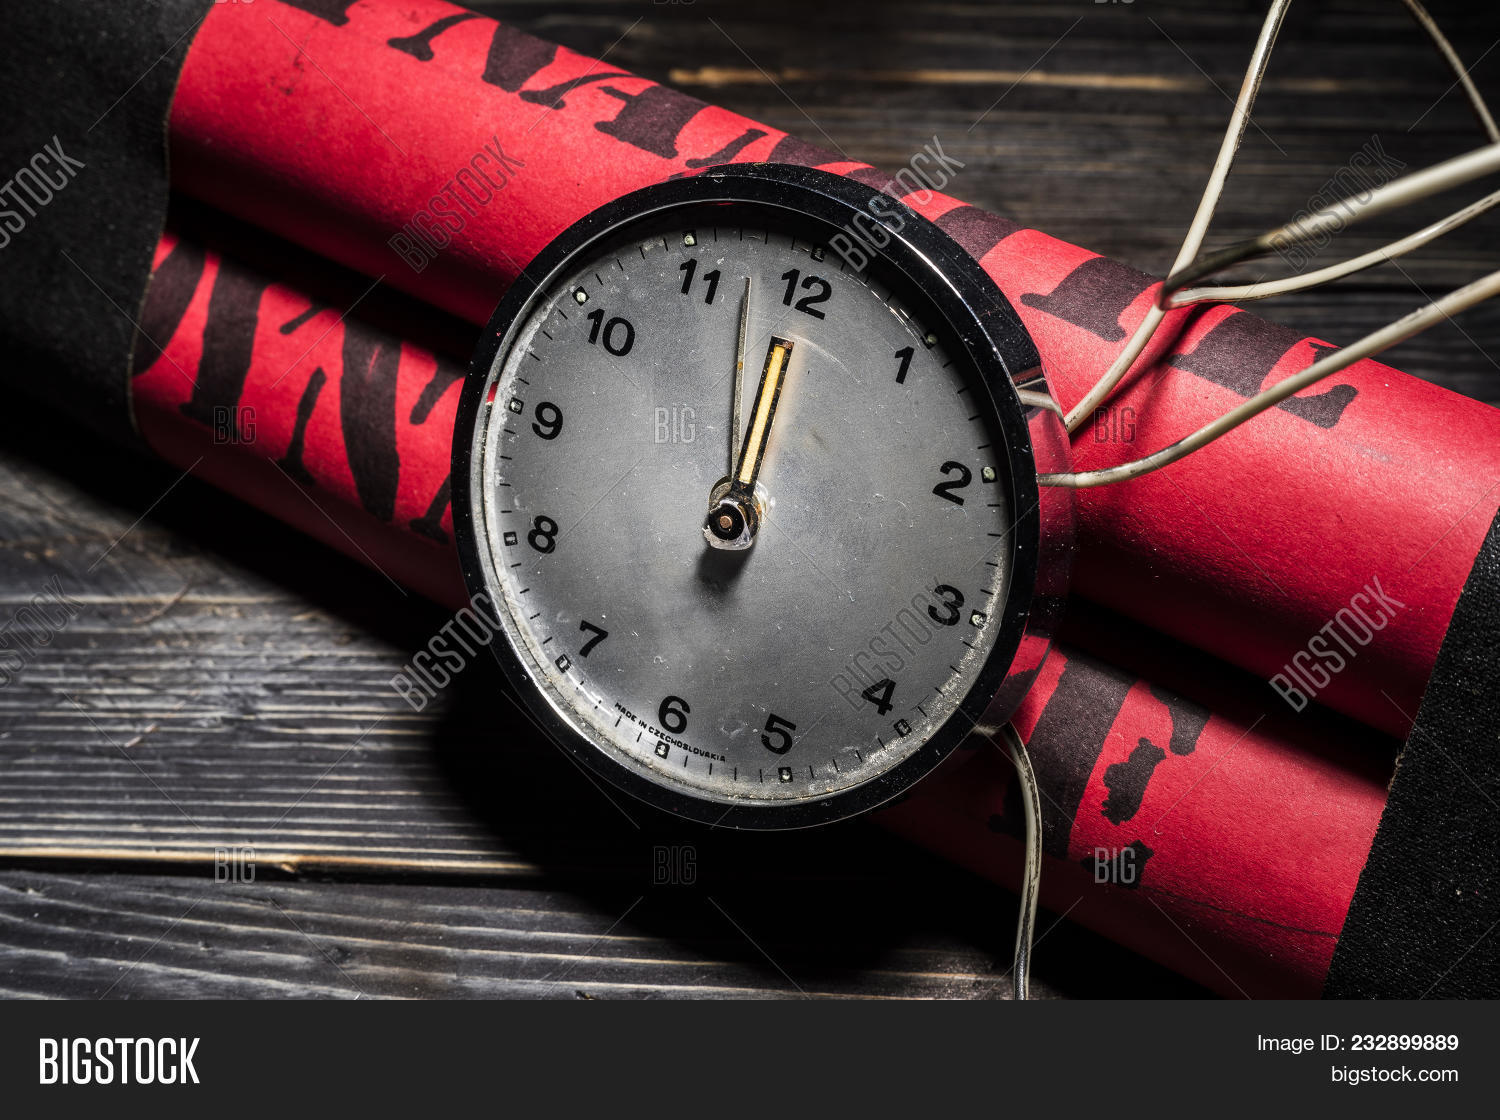 Dynamite Bomb Timer, Image & Photo (Free Trial) | Bigstock